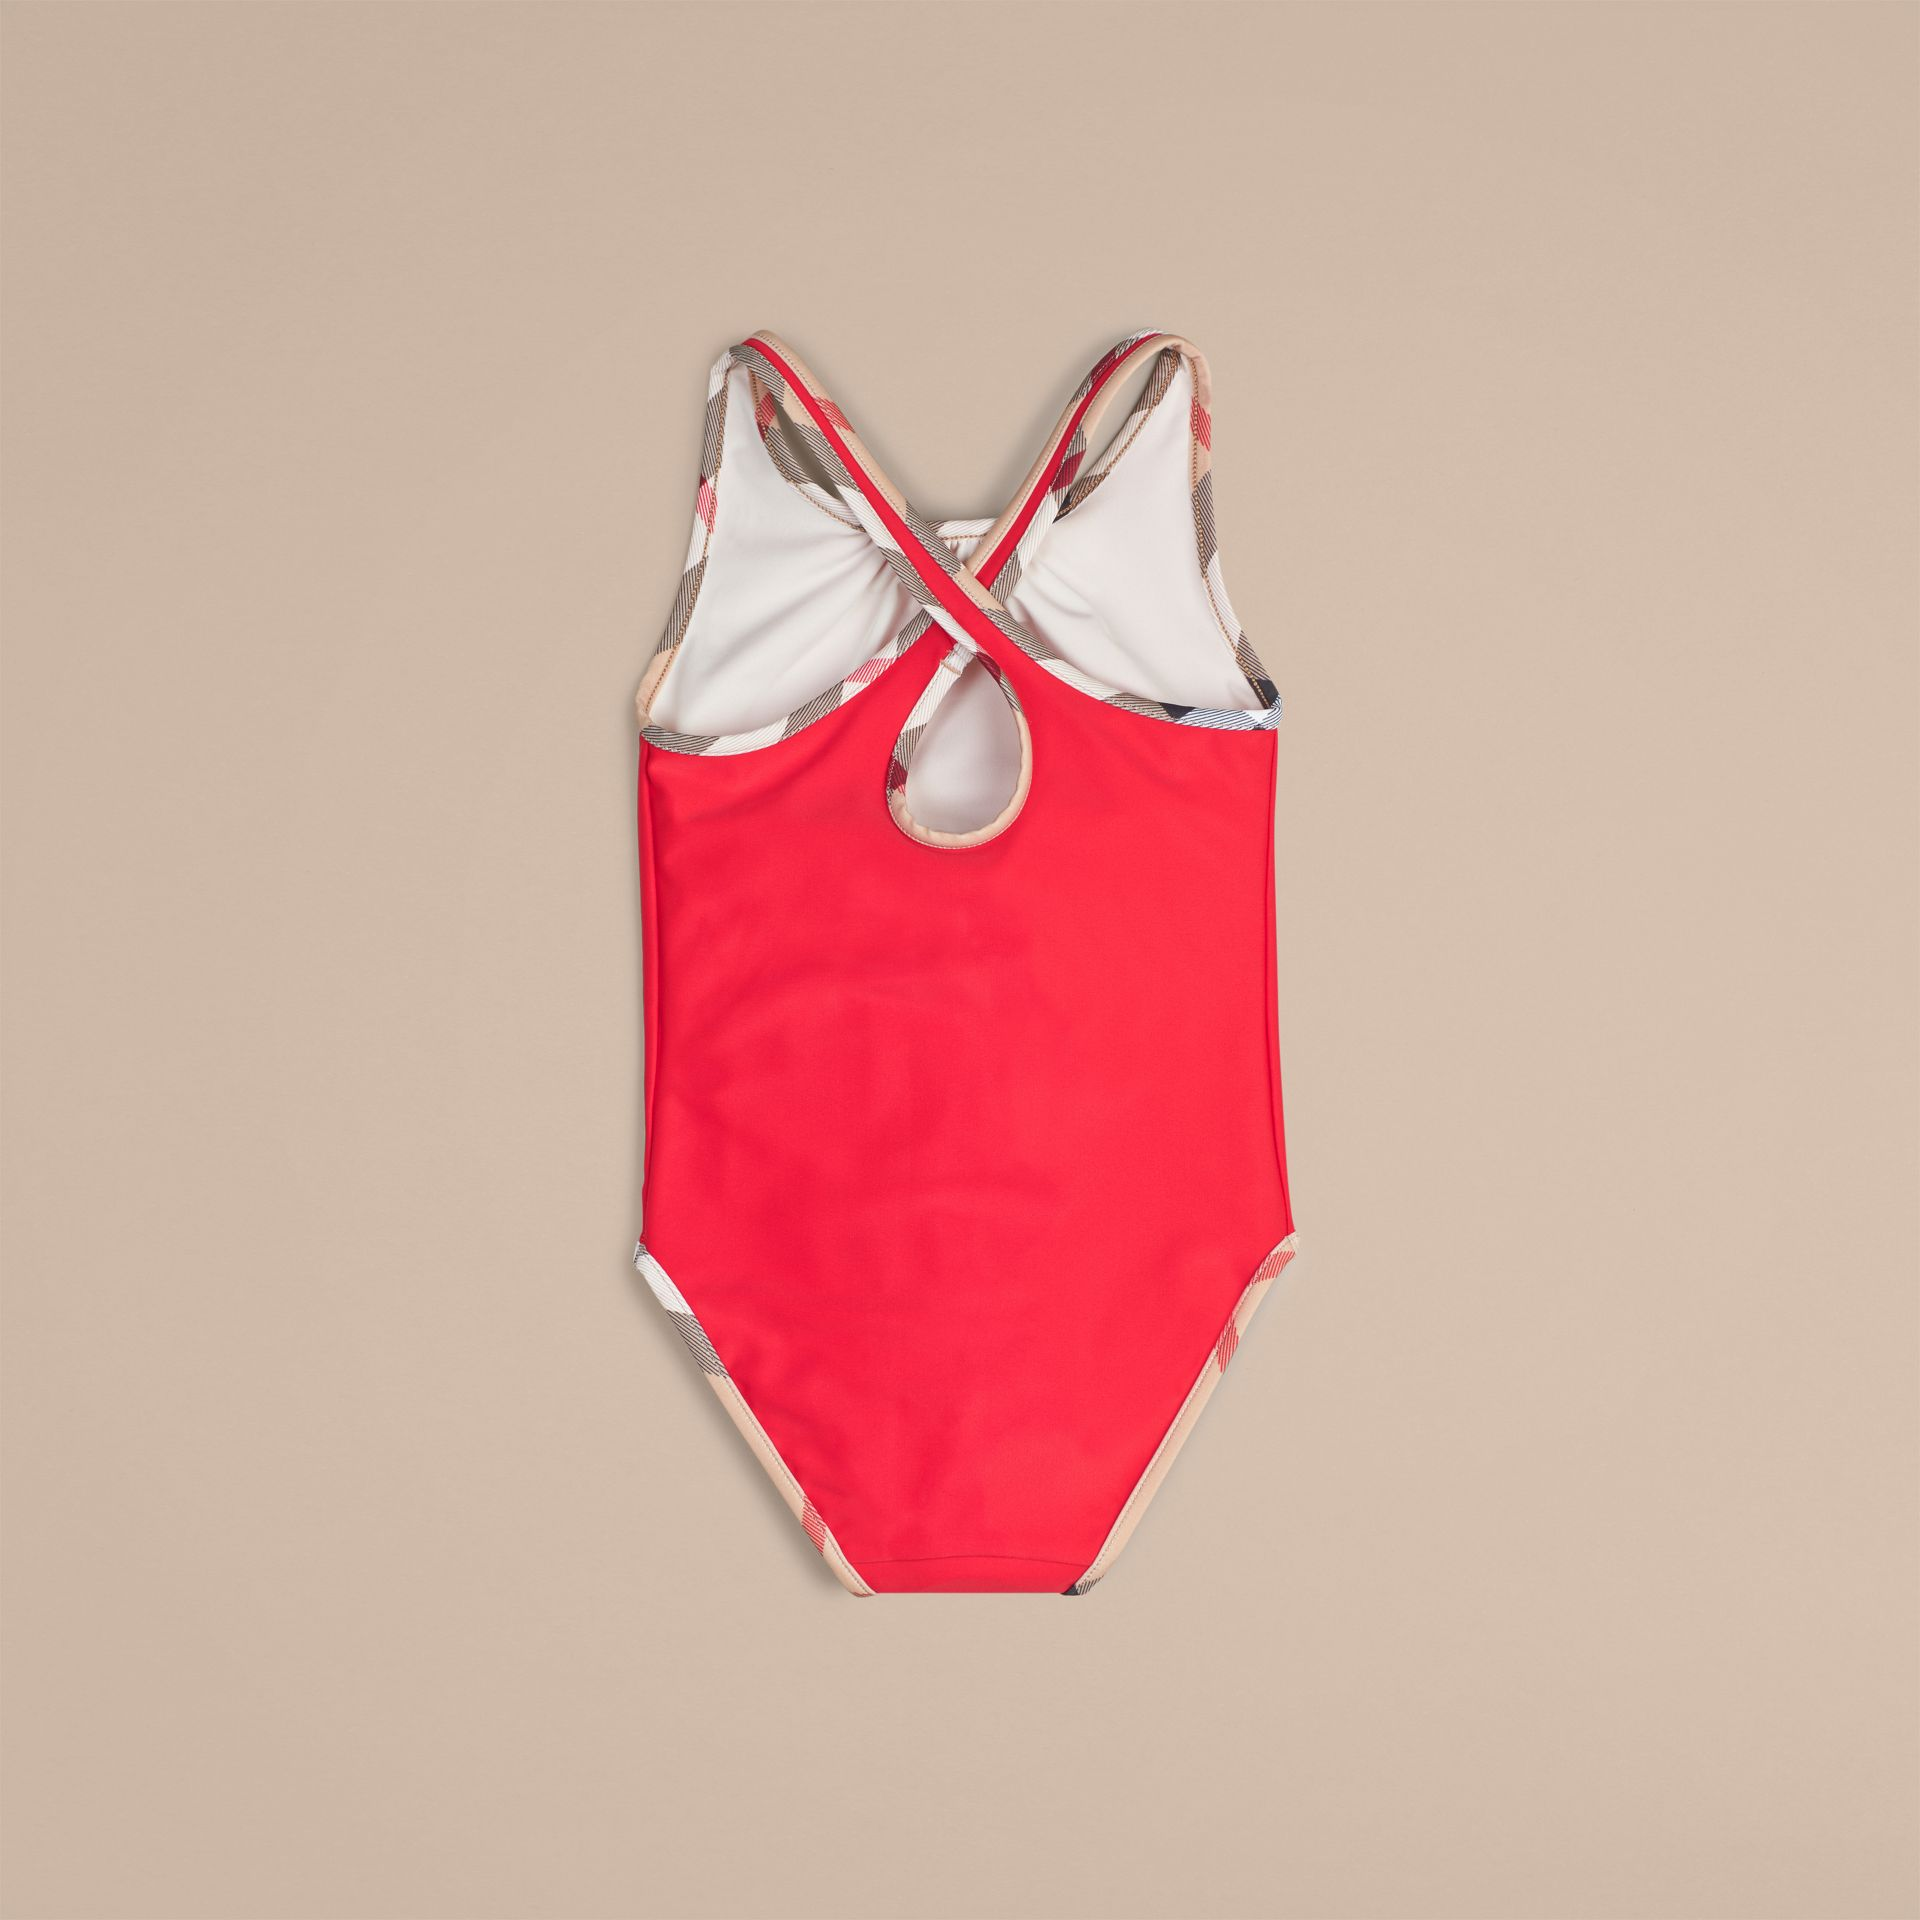 Poppy red Check Detail One-piece Swimsuit Poppy Red - gallery image 2